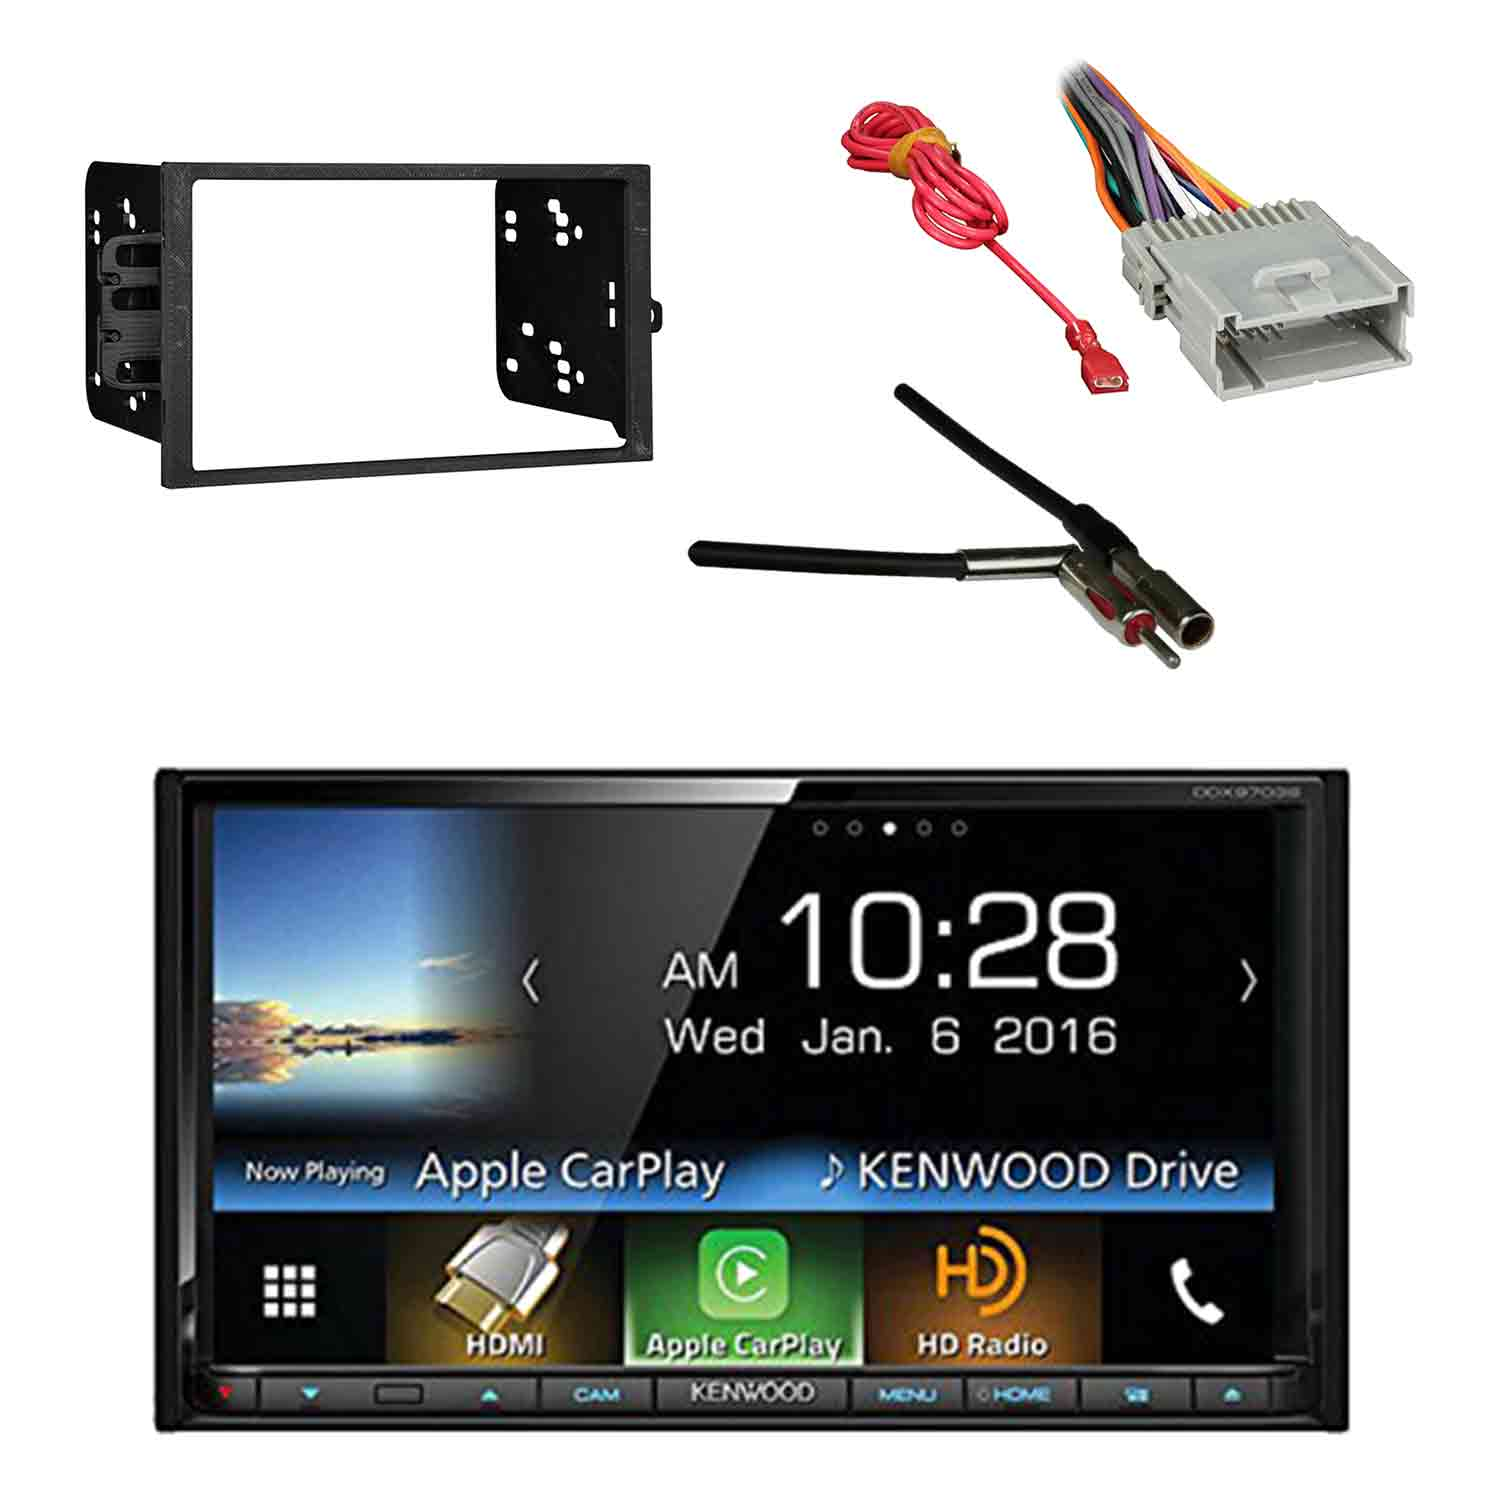 kenwood ddx9703s 2 din dvd cd am fm car stereo receiver with metra kenwood sub amp [ 1500 x 1500 Pixel ]